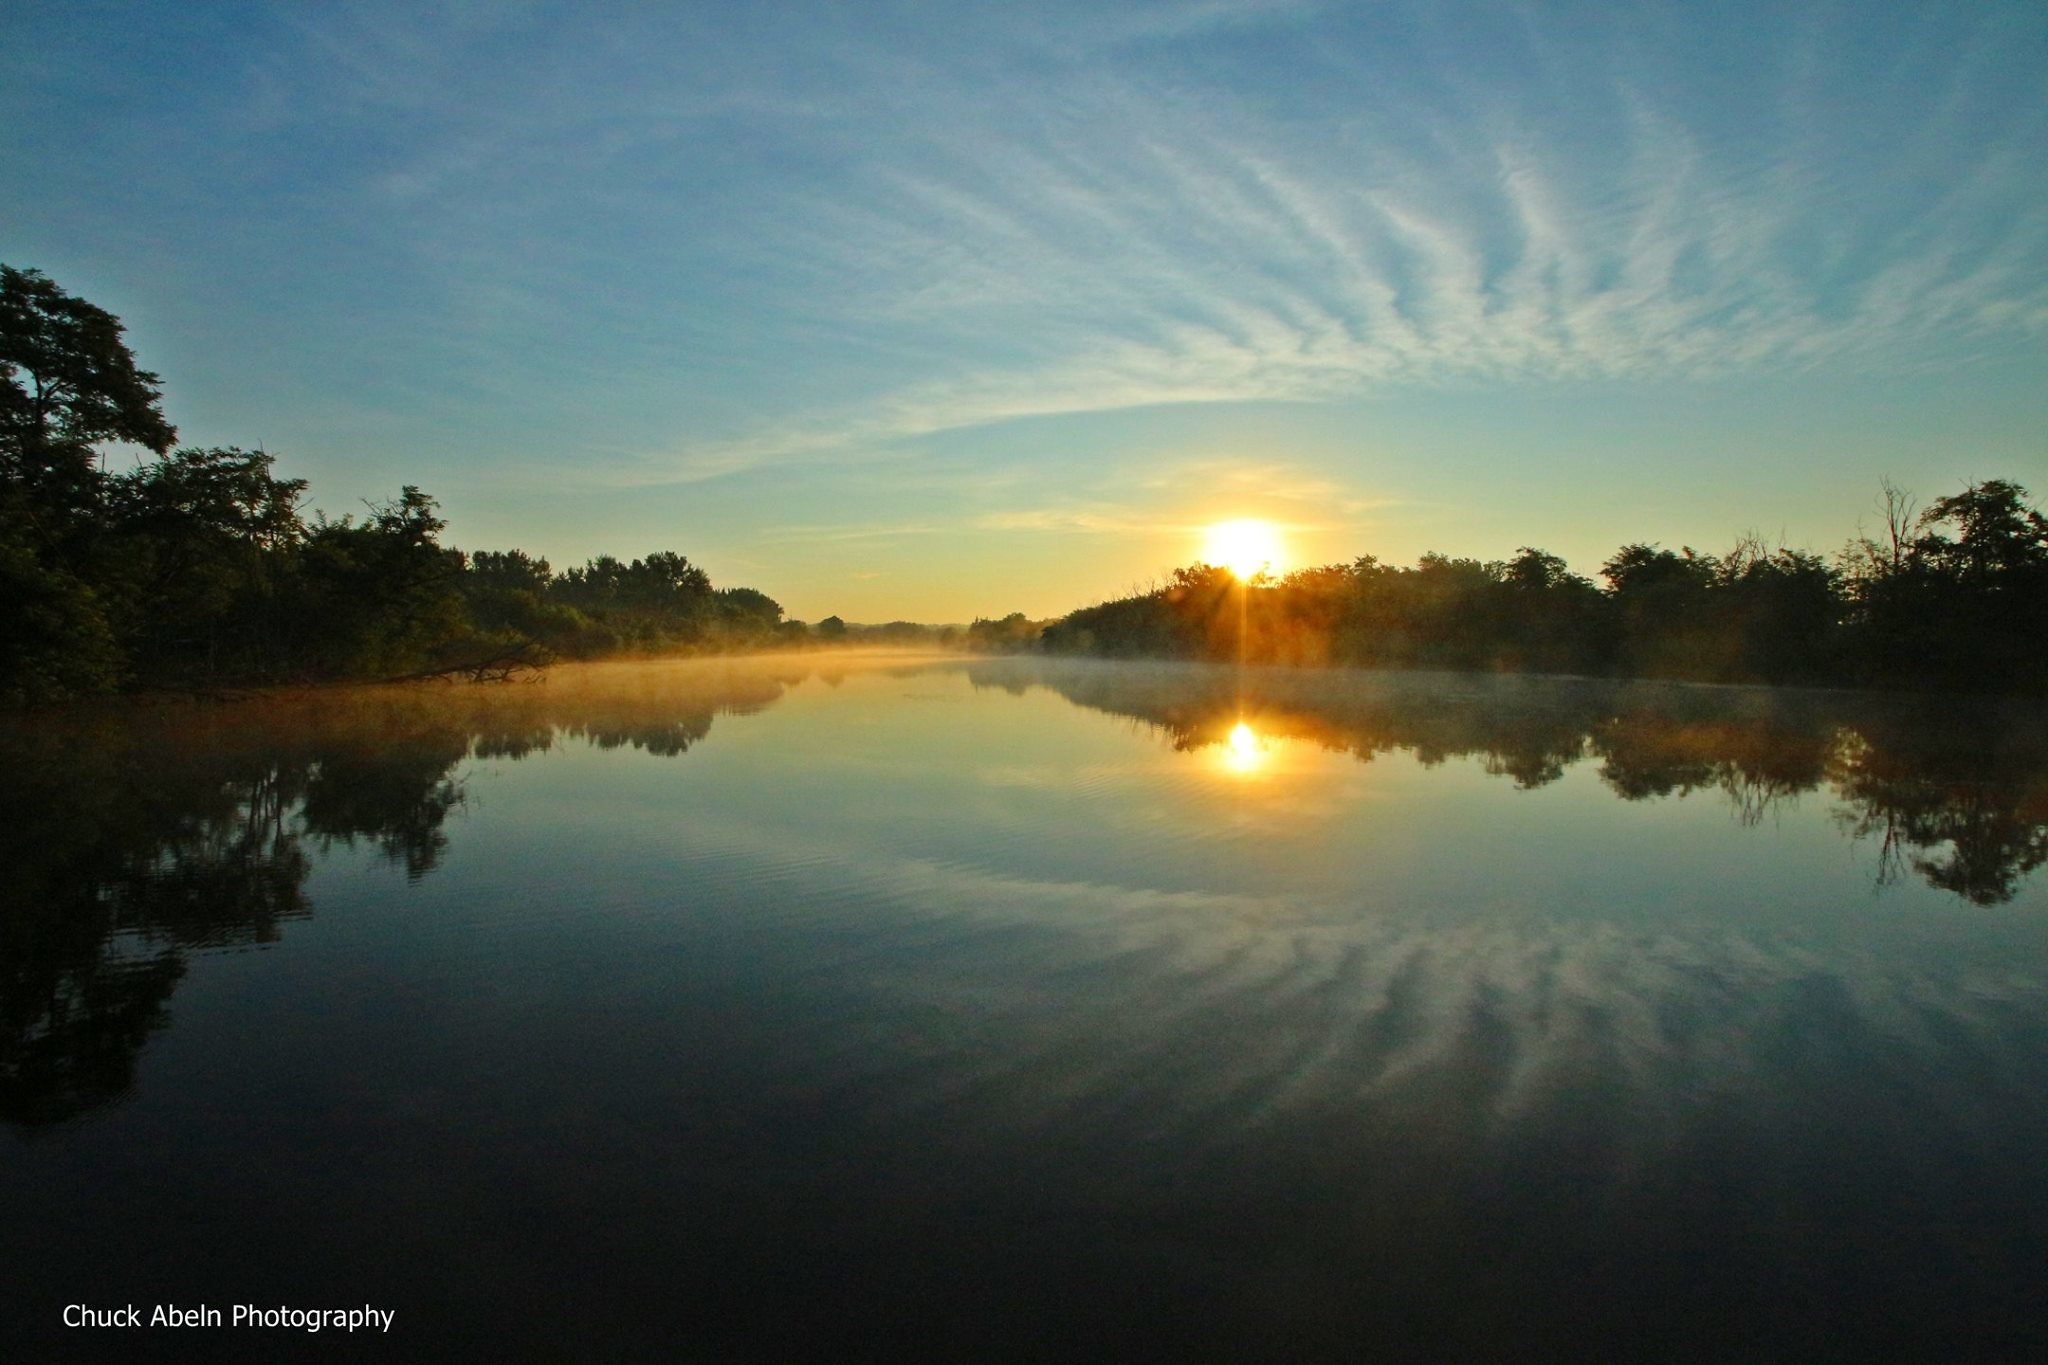 Canton (IL) United States  city photos gallery : Banner Marsh State Fish & Wildlife Area, 19721 N. US 24 Canton, IL ...